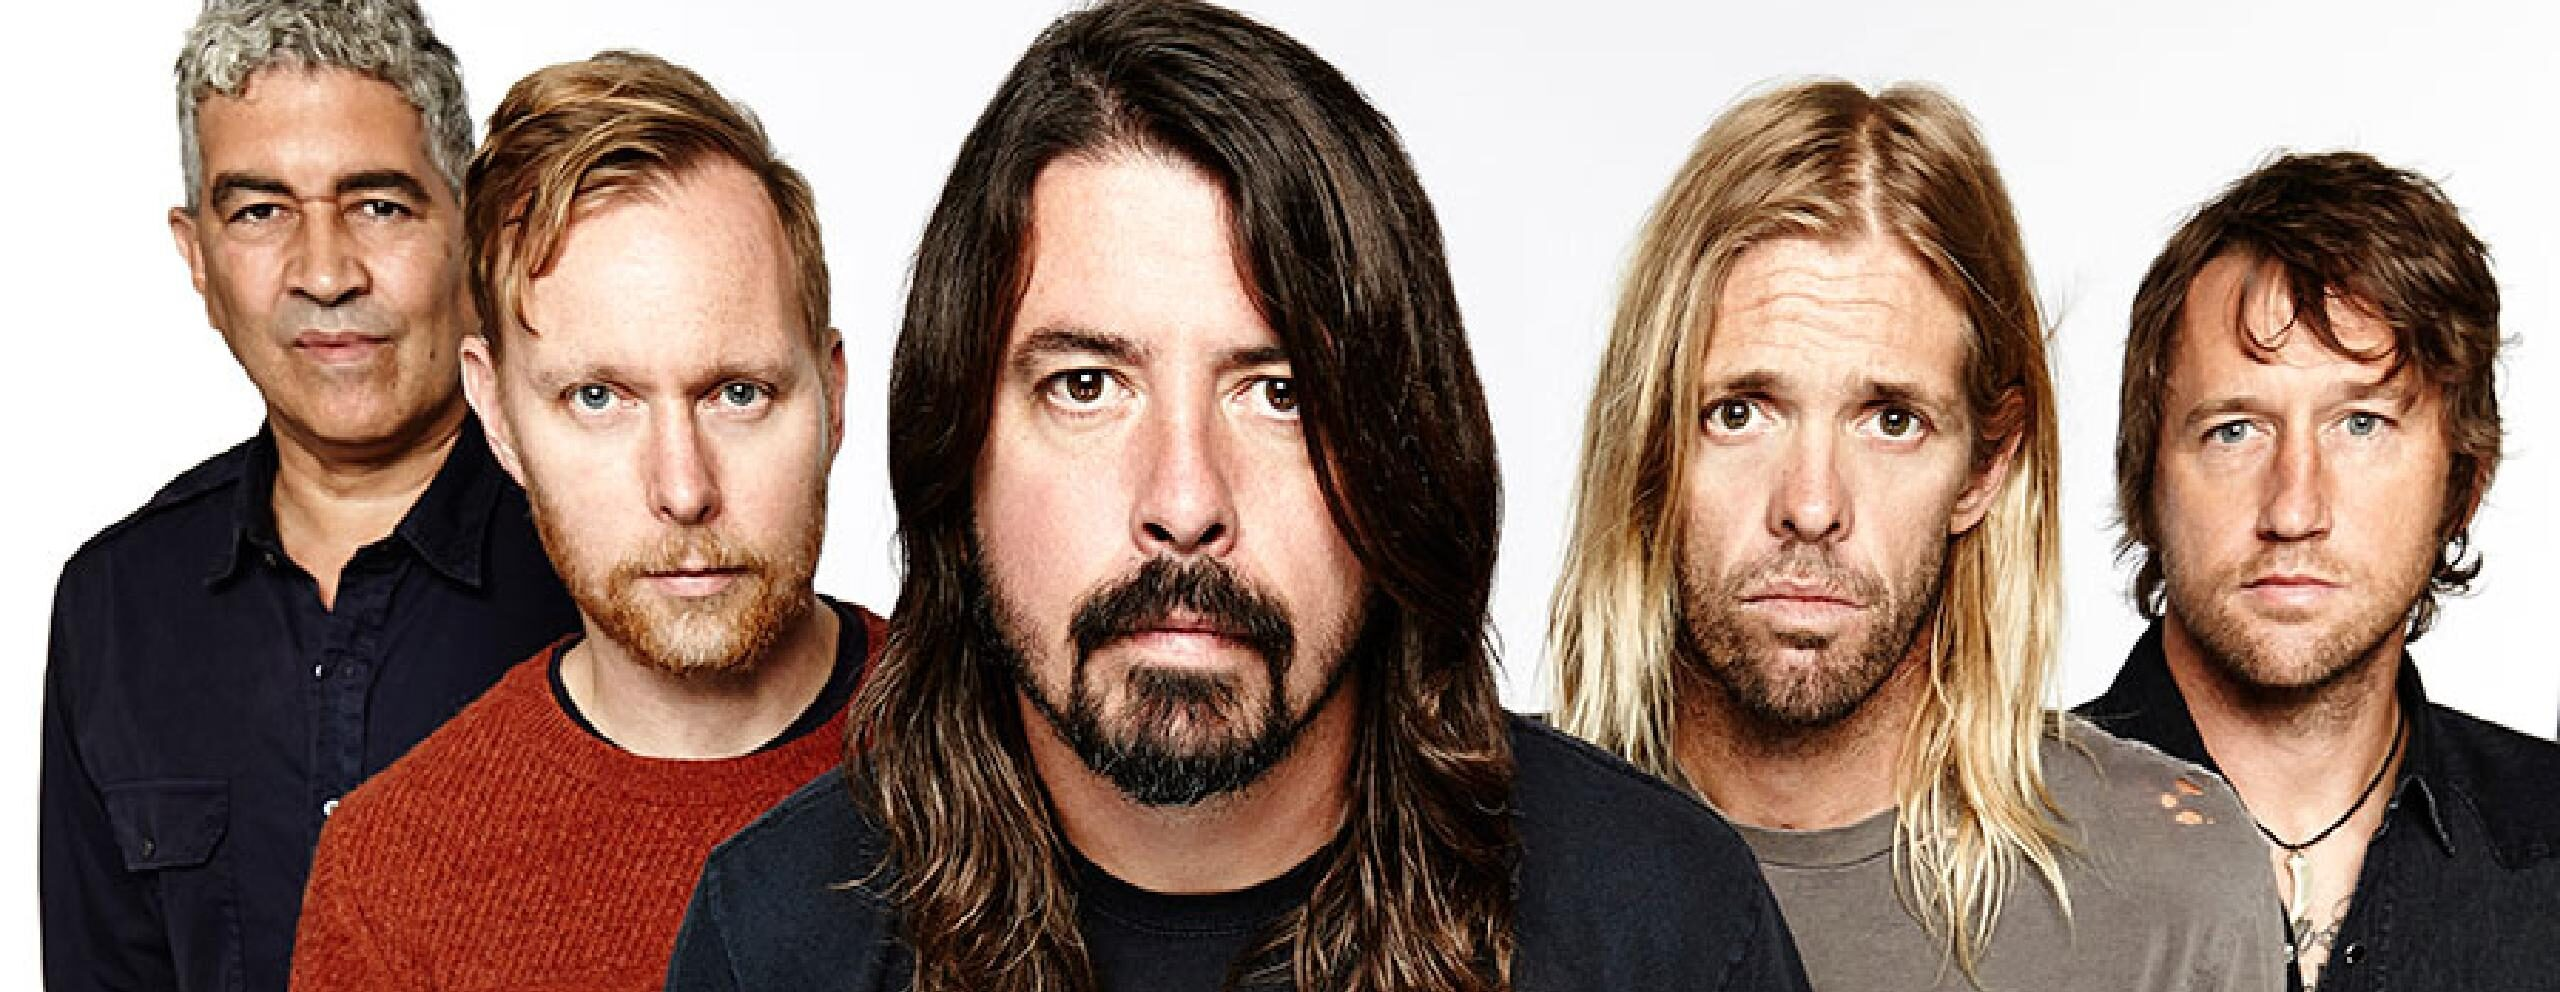 foo fighters 2021 tour